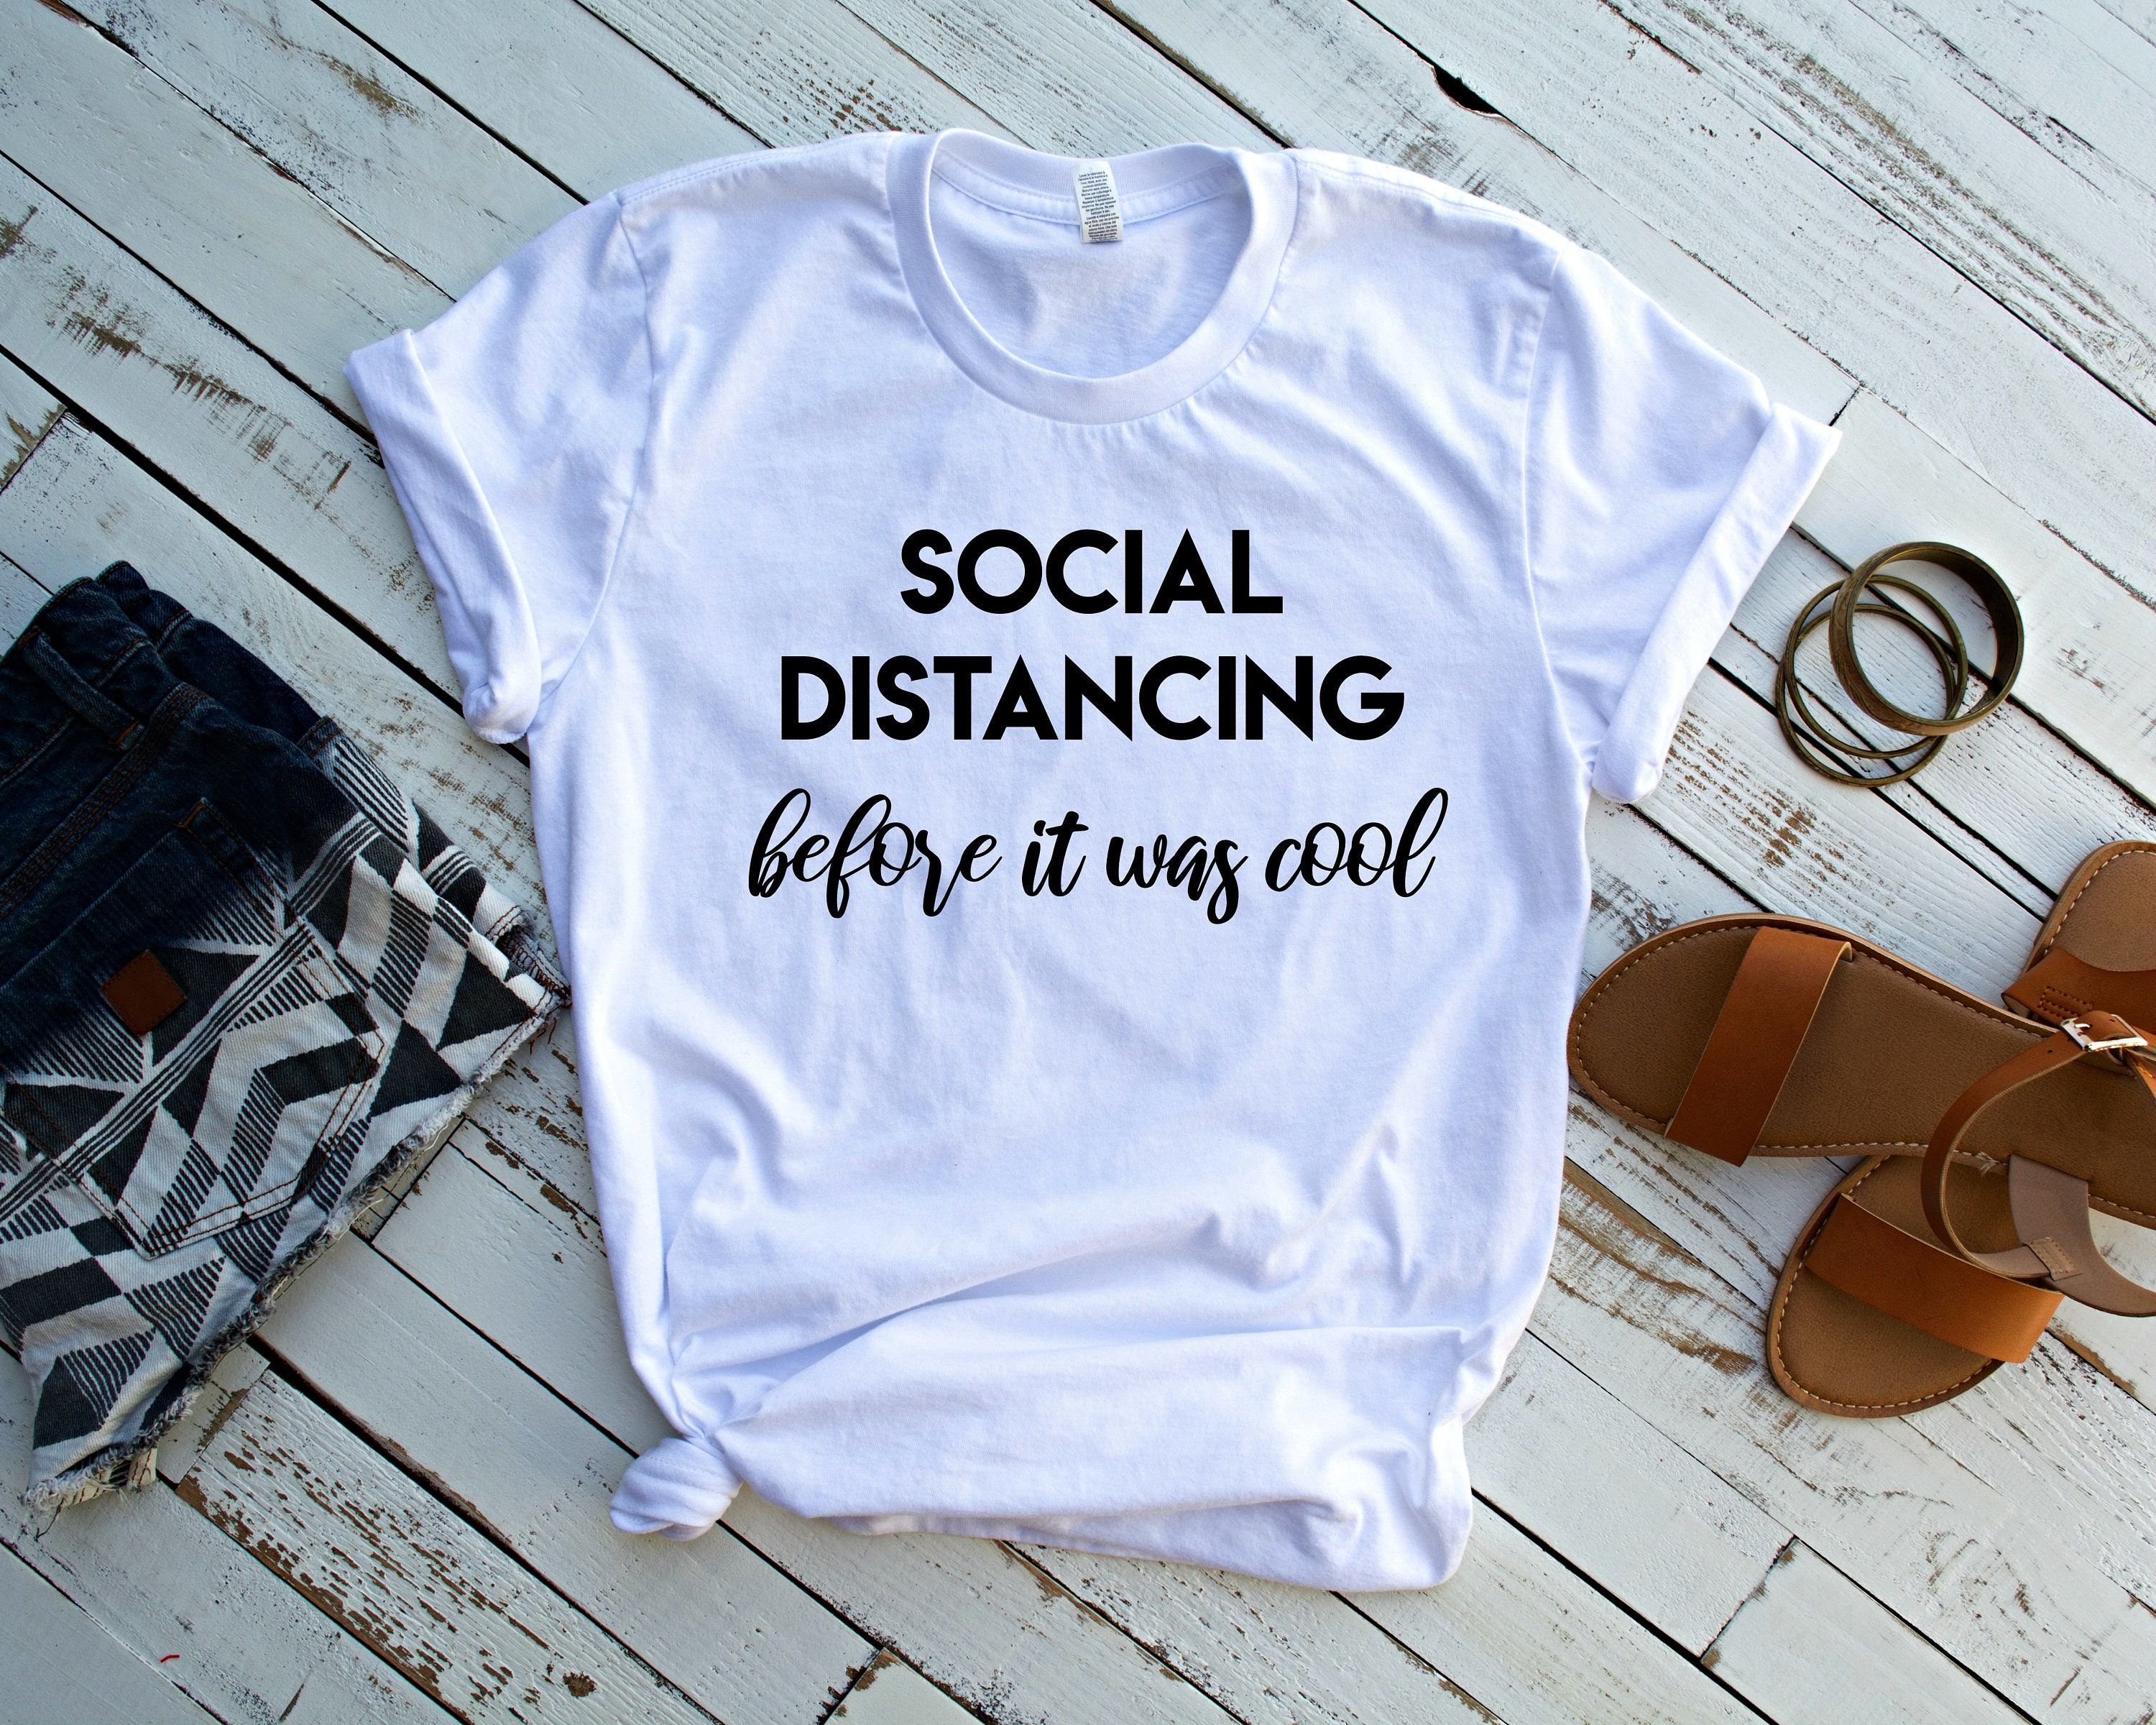 Best quarantined mom shirts from etsy - Social Distancing T-shirt for Women